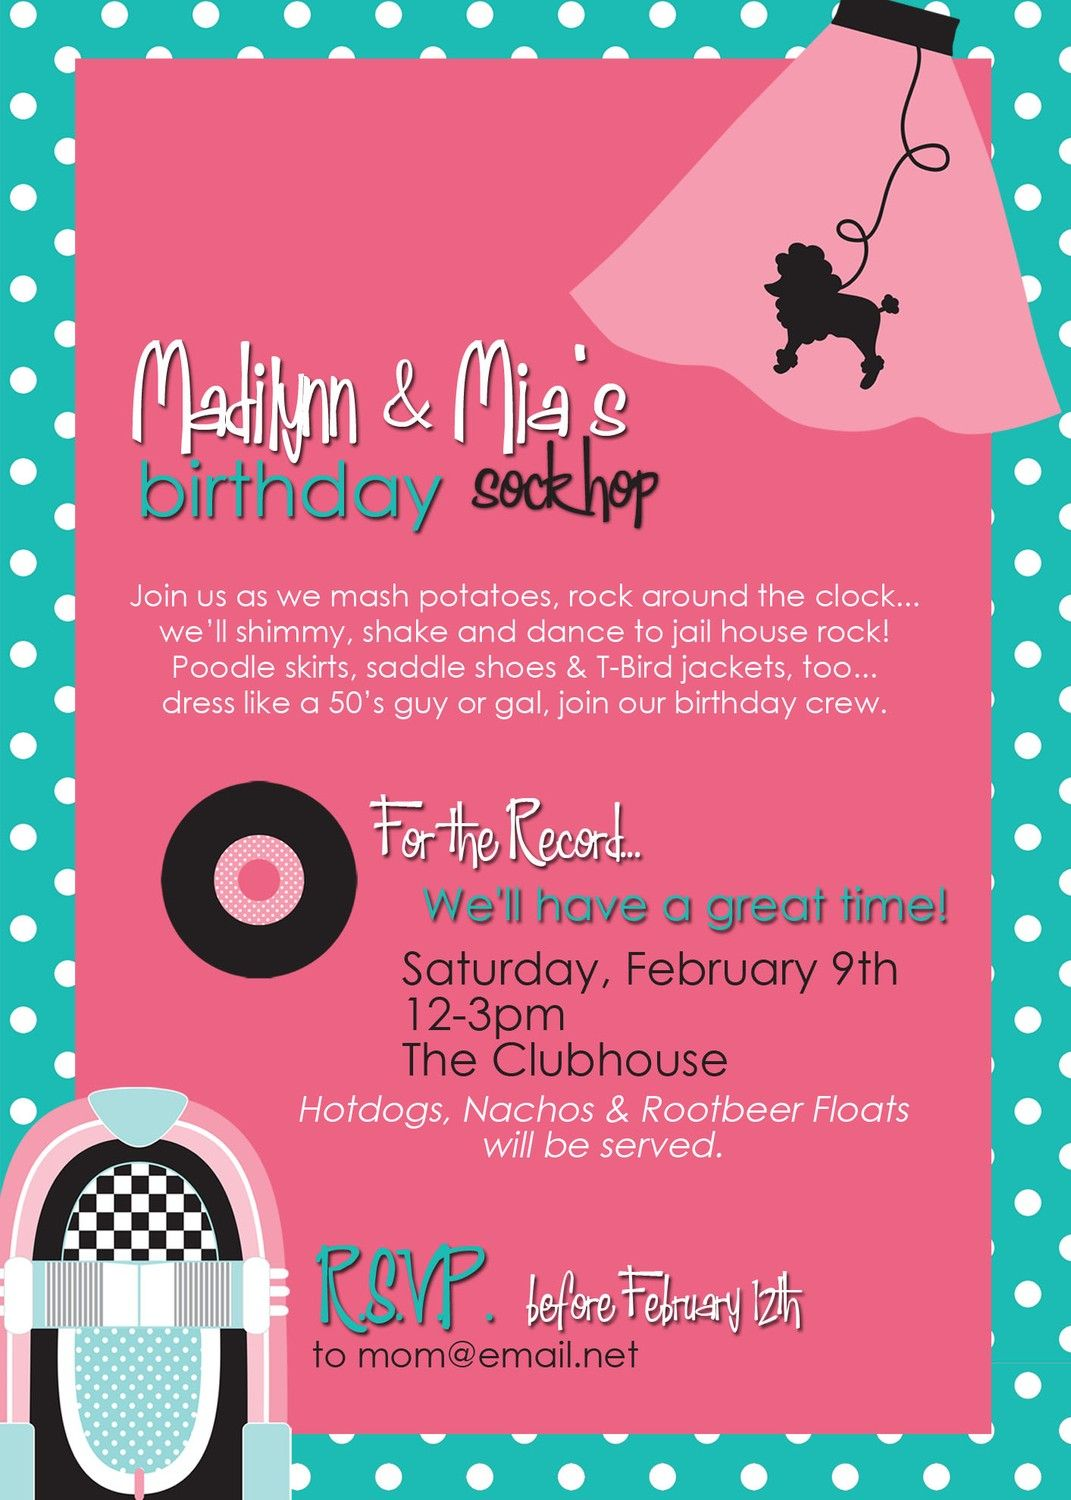 50s party invitation wwwtablescapesbydesigncom httpswww